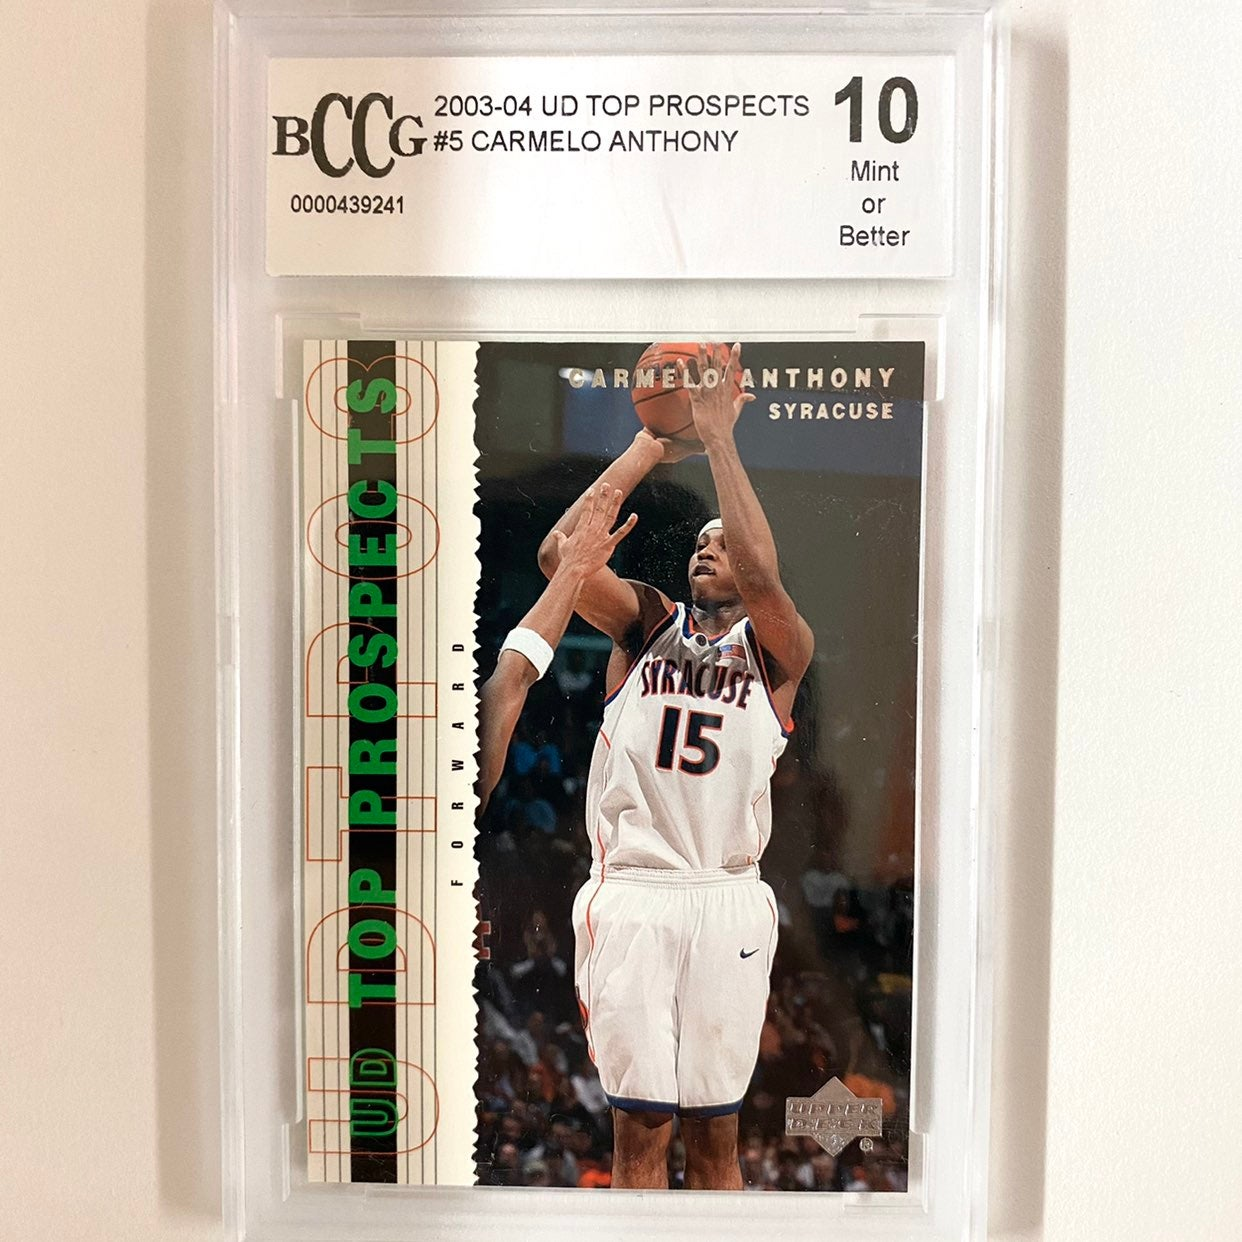 2003 Carmelo Anthony Rookie Top Prospect